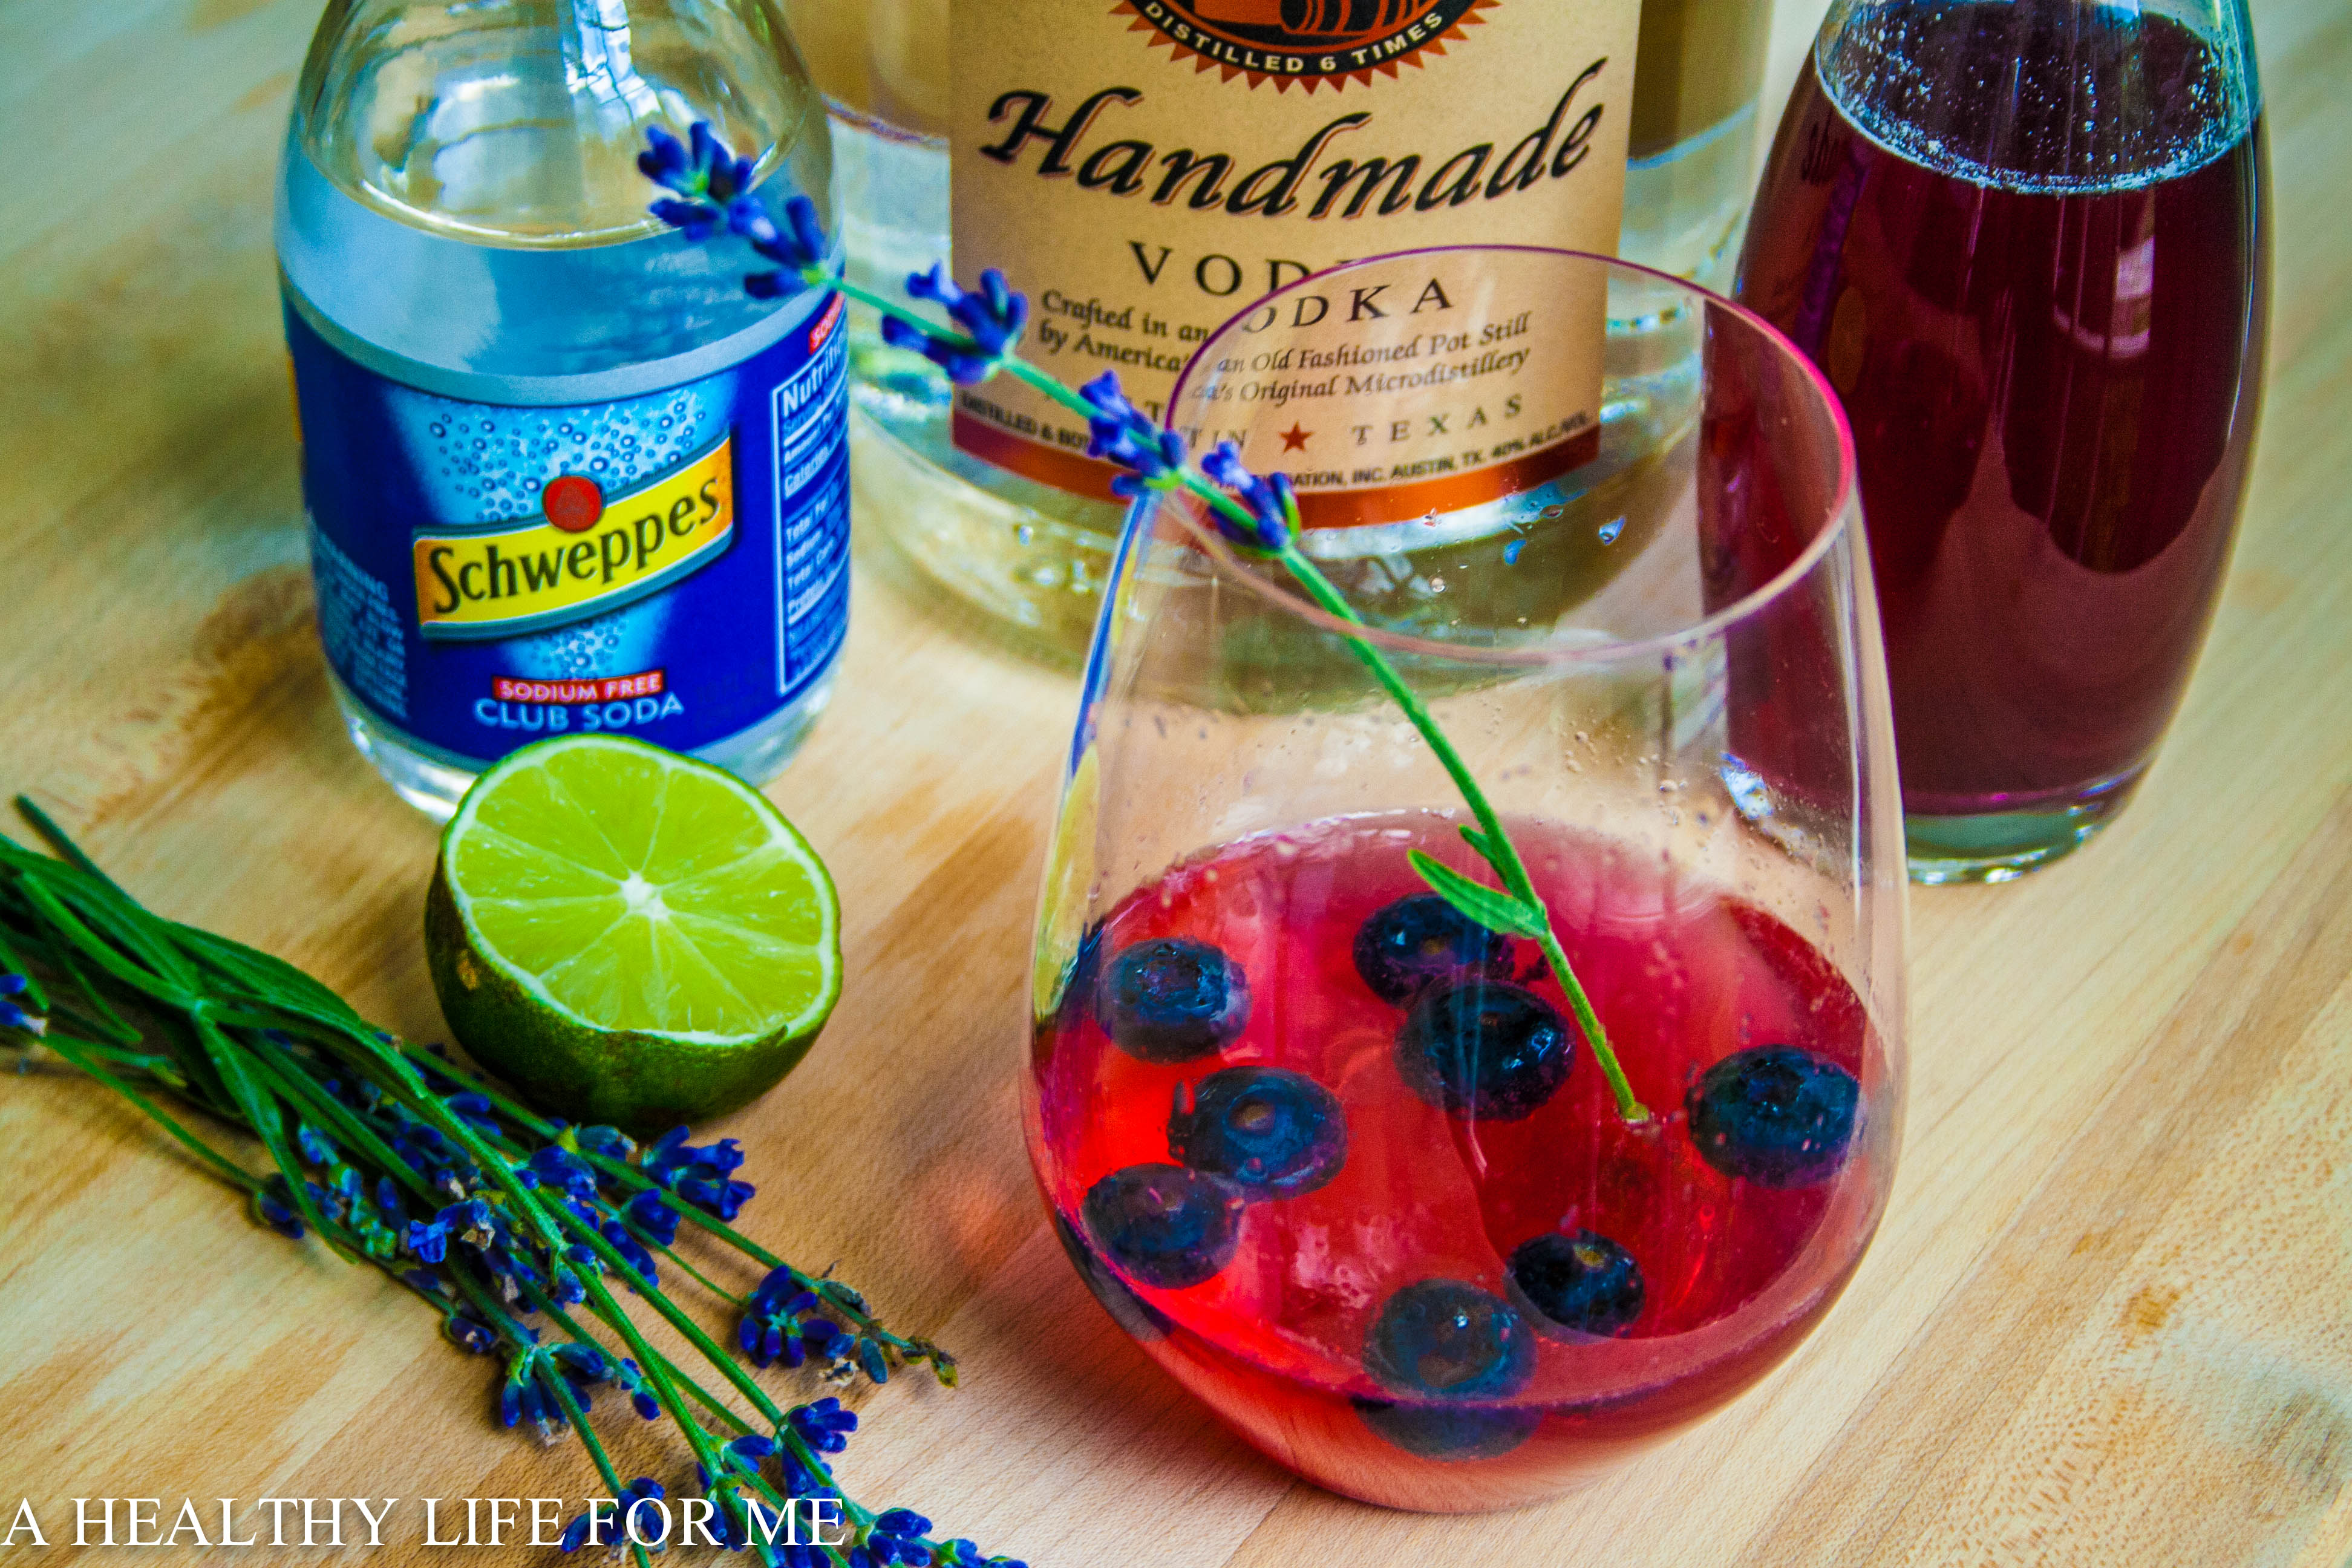 In a glass pitcher combine the vodka, simple syrup, lime juice, and ...